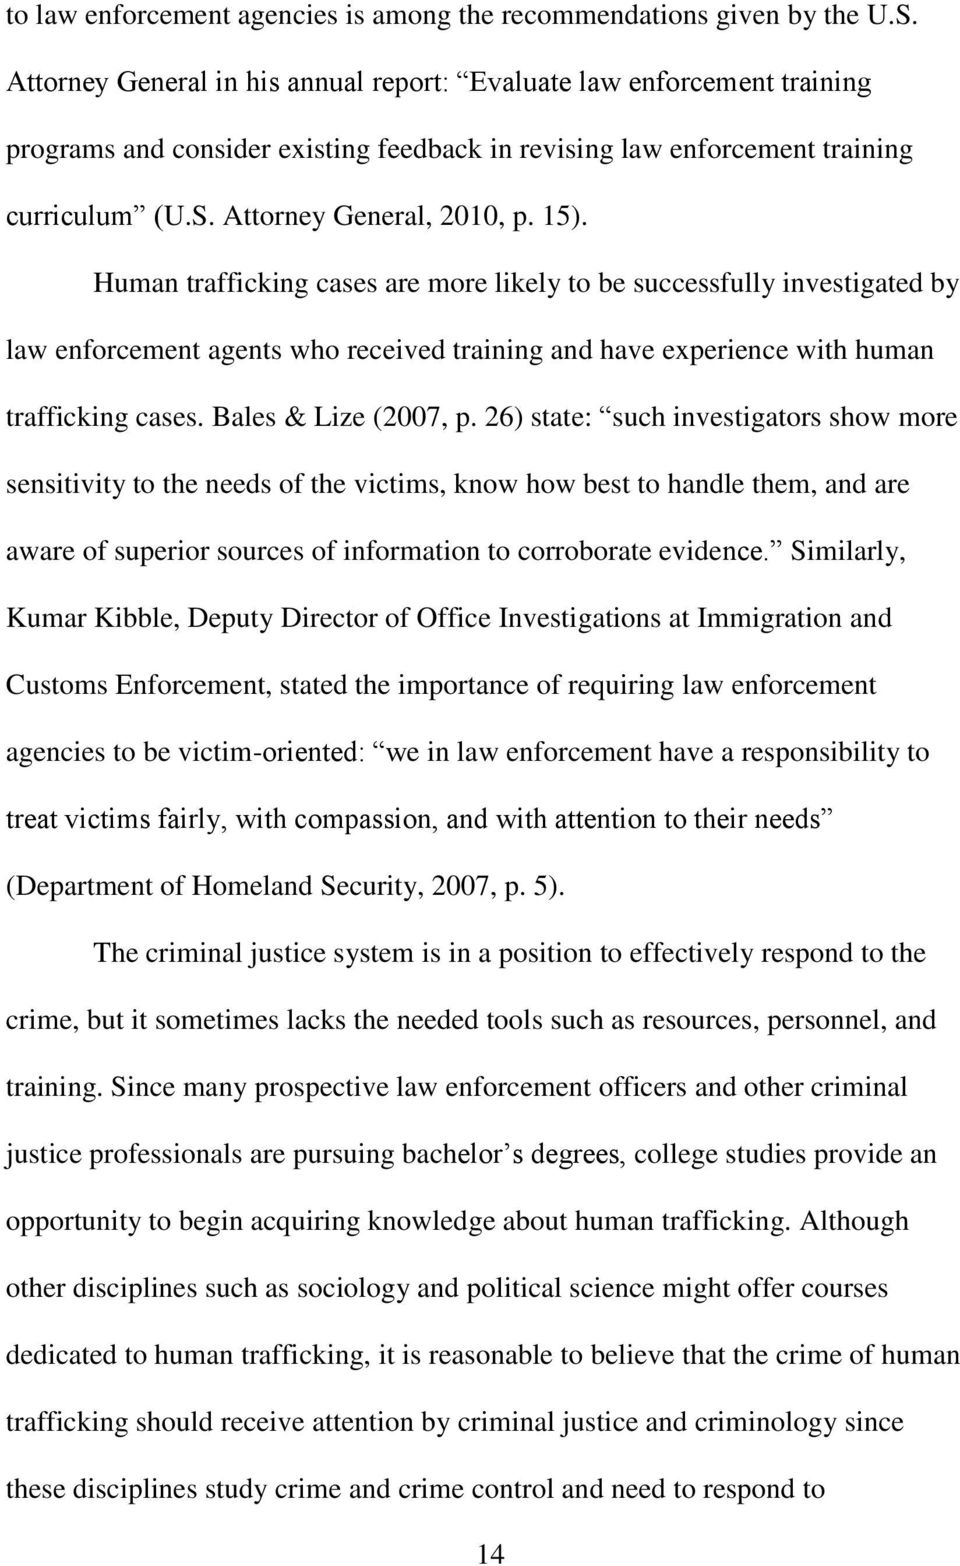 Human trafficking cases are more likely to be successfully investigated by law enforcement agents who received training and have experience with human trafficking cases. Bales & Lize (2007, p.